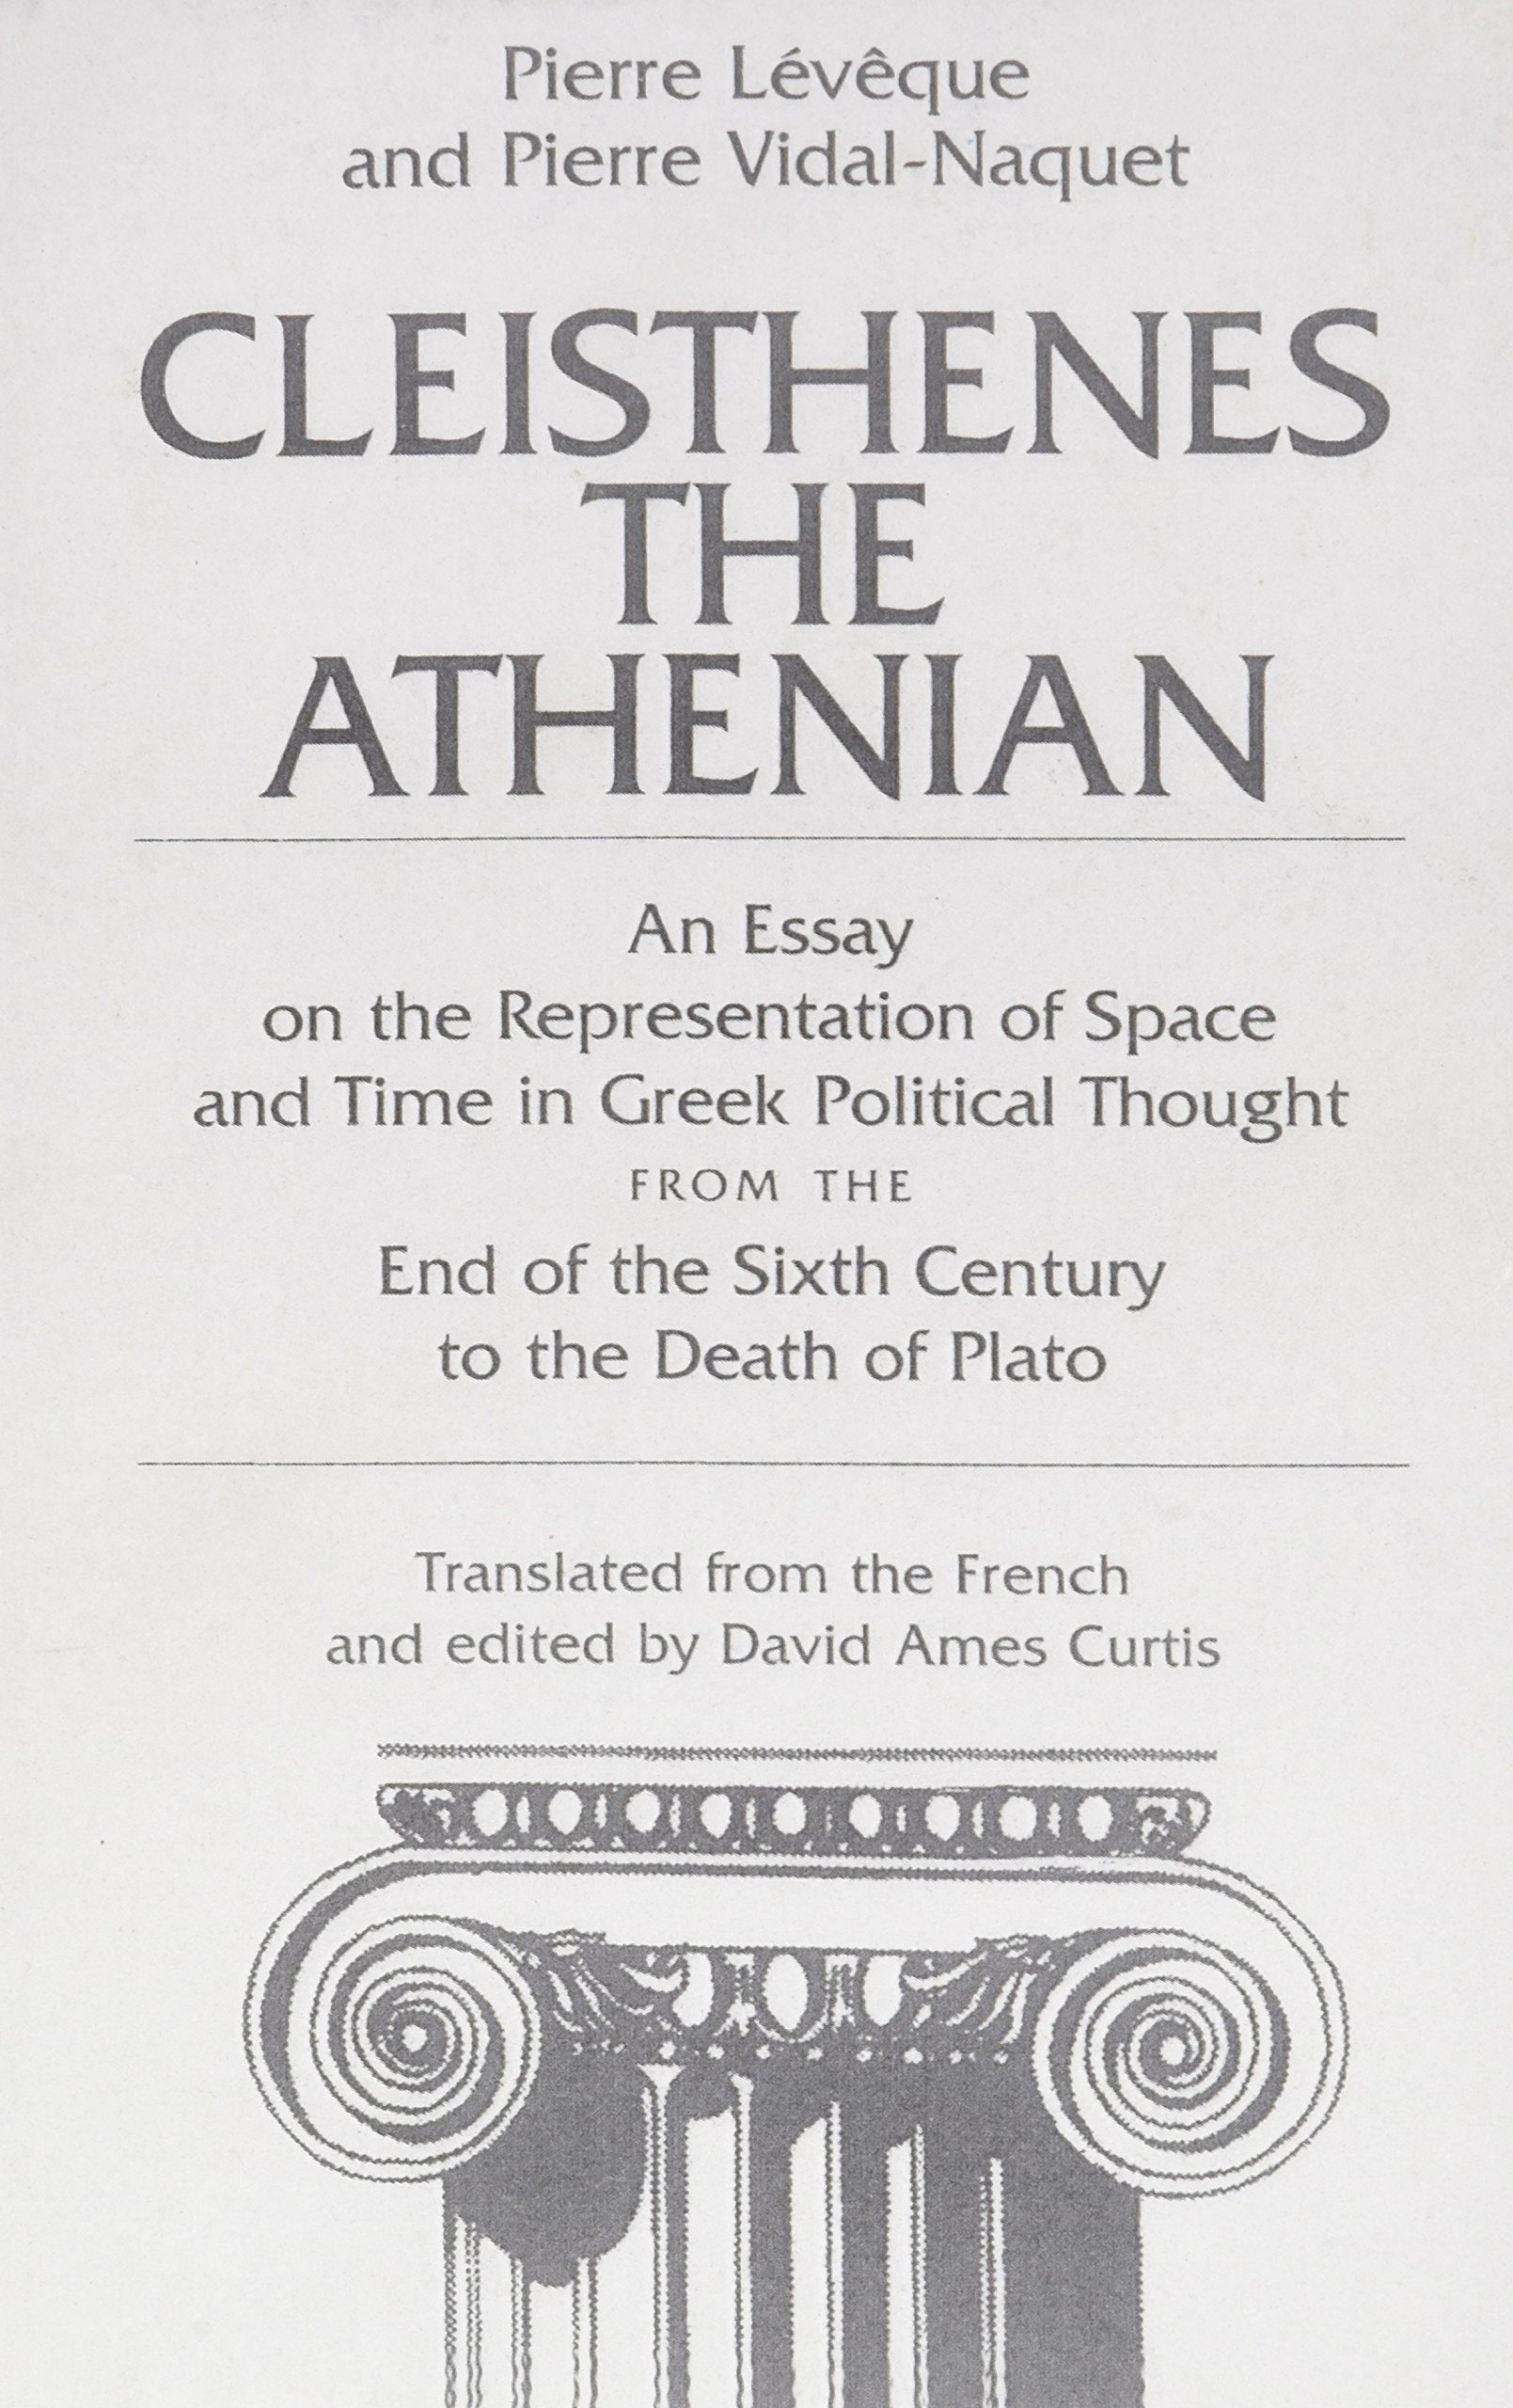 the black death essay veteran essay black death essay cleisthenes  cleisthenes the athenian an essay on the representation of space cleisthenes the athenian an essay on